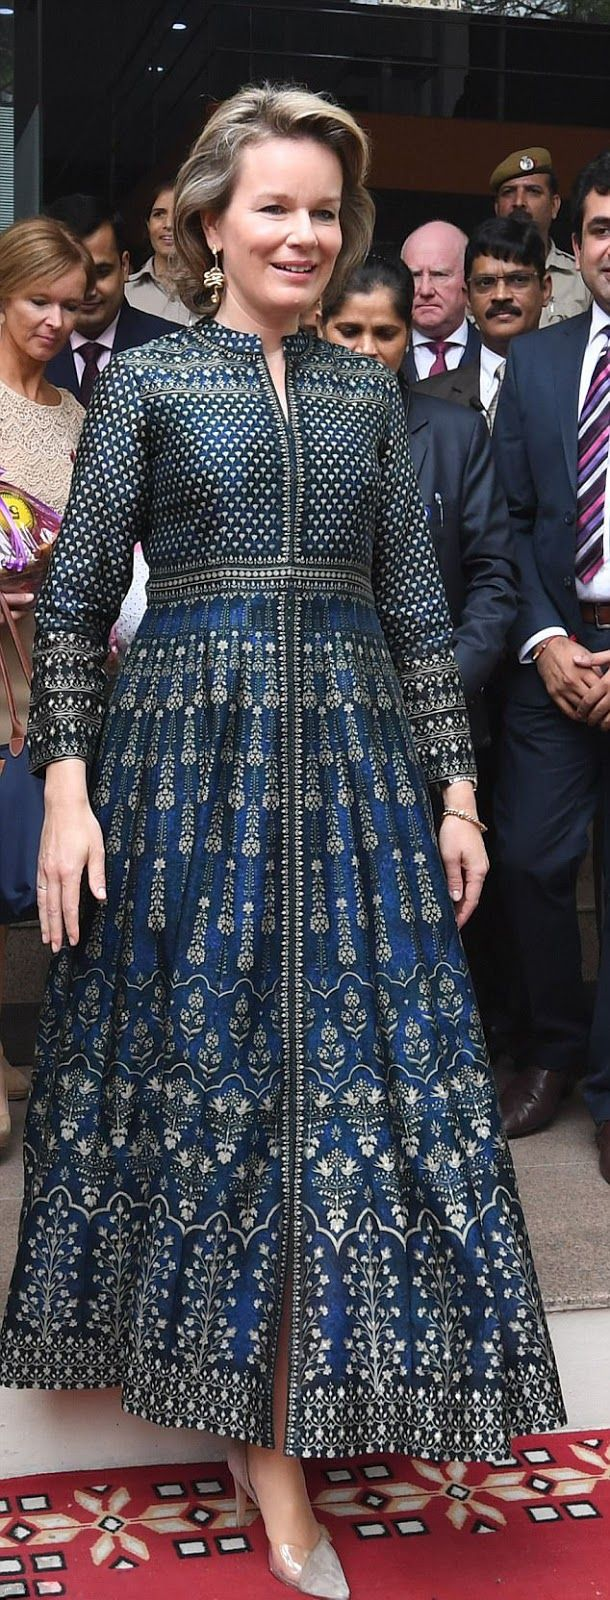 Queen Mathilde of Belgium opts for an unusual choice of shoe design, giving a little bit of an edge to the traditional outfit during their state visit in Gurgaon, India